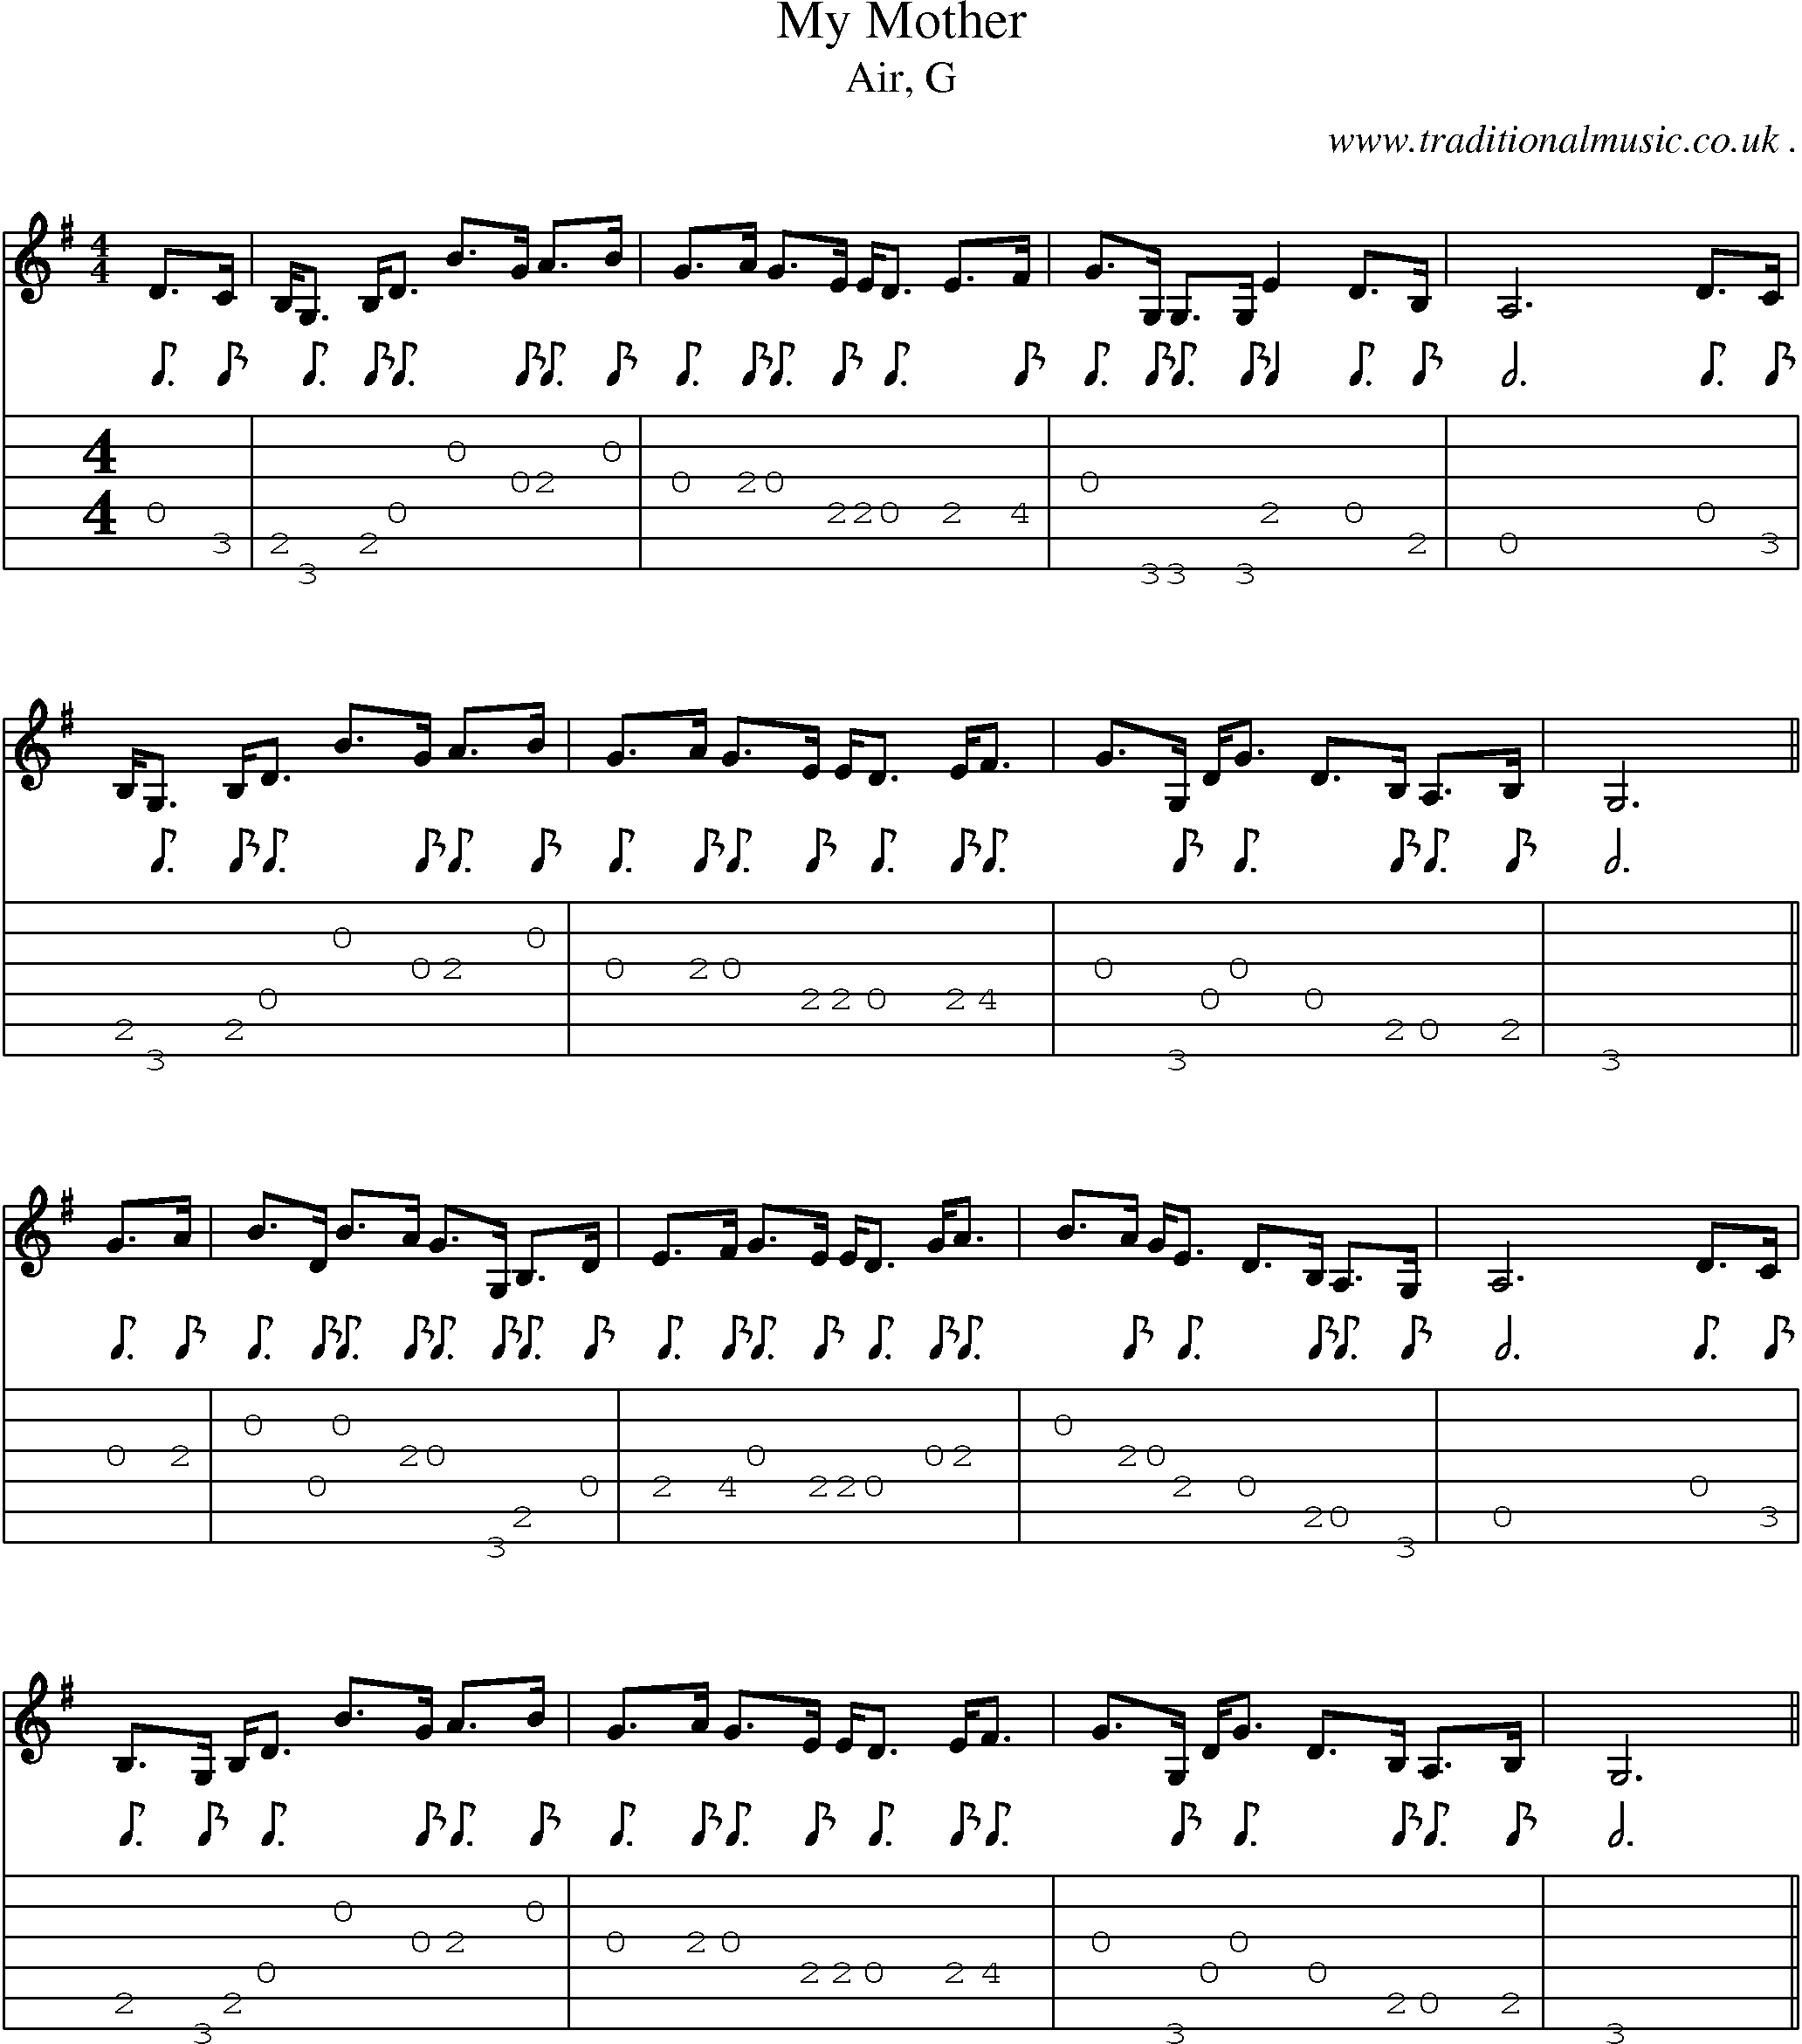 Scottish Tune Sheetmusic Midi Mp3 Guitar Chords Tabs My Mother